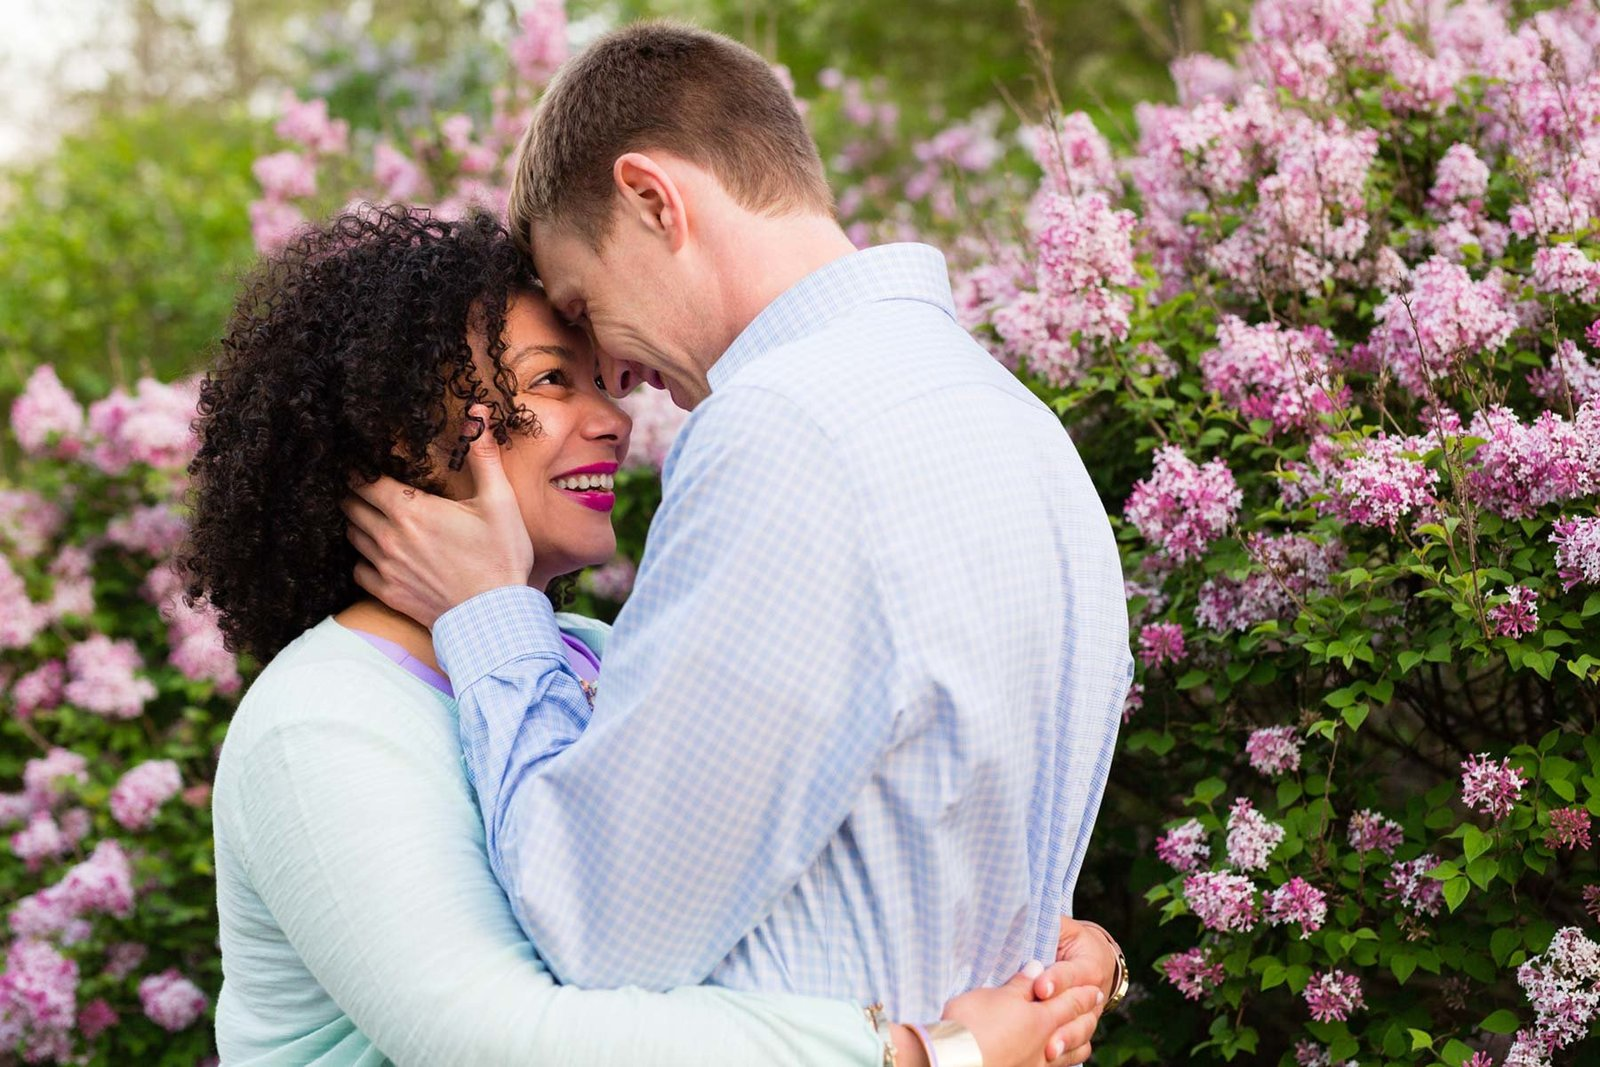 Arnold Arboretum Boston Massachusetts Engagement Shoot Flowers Image